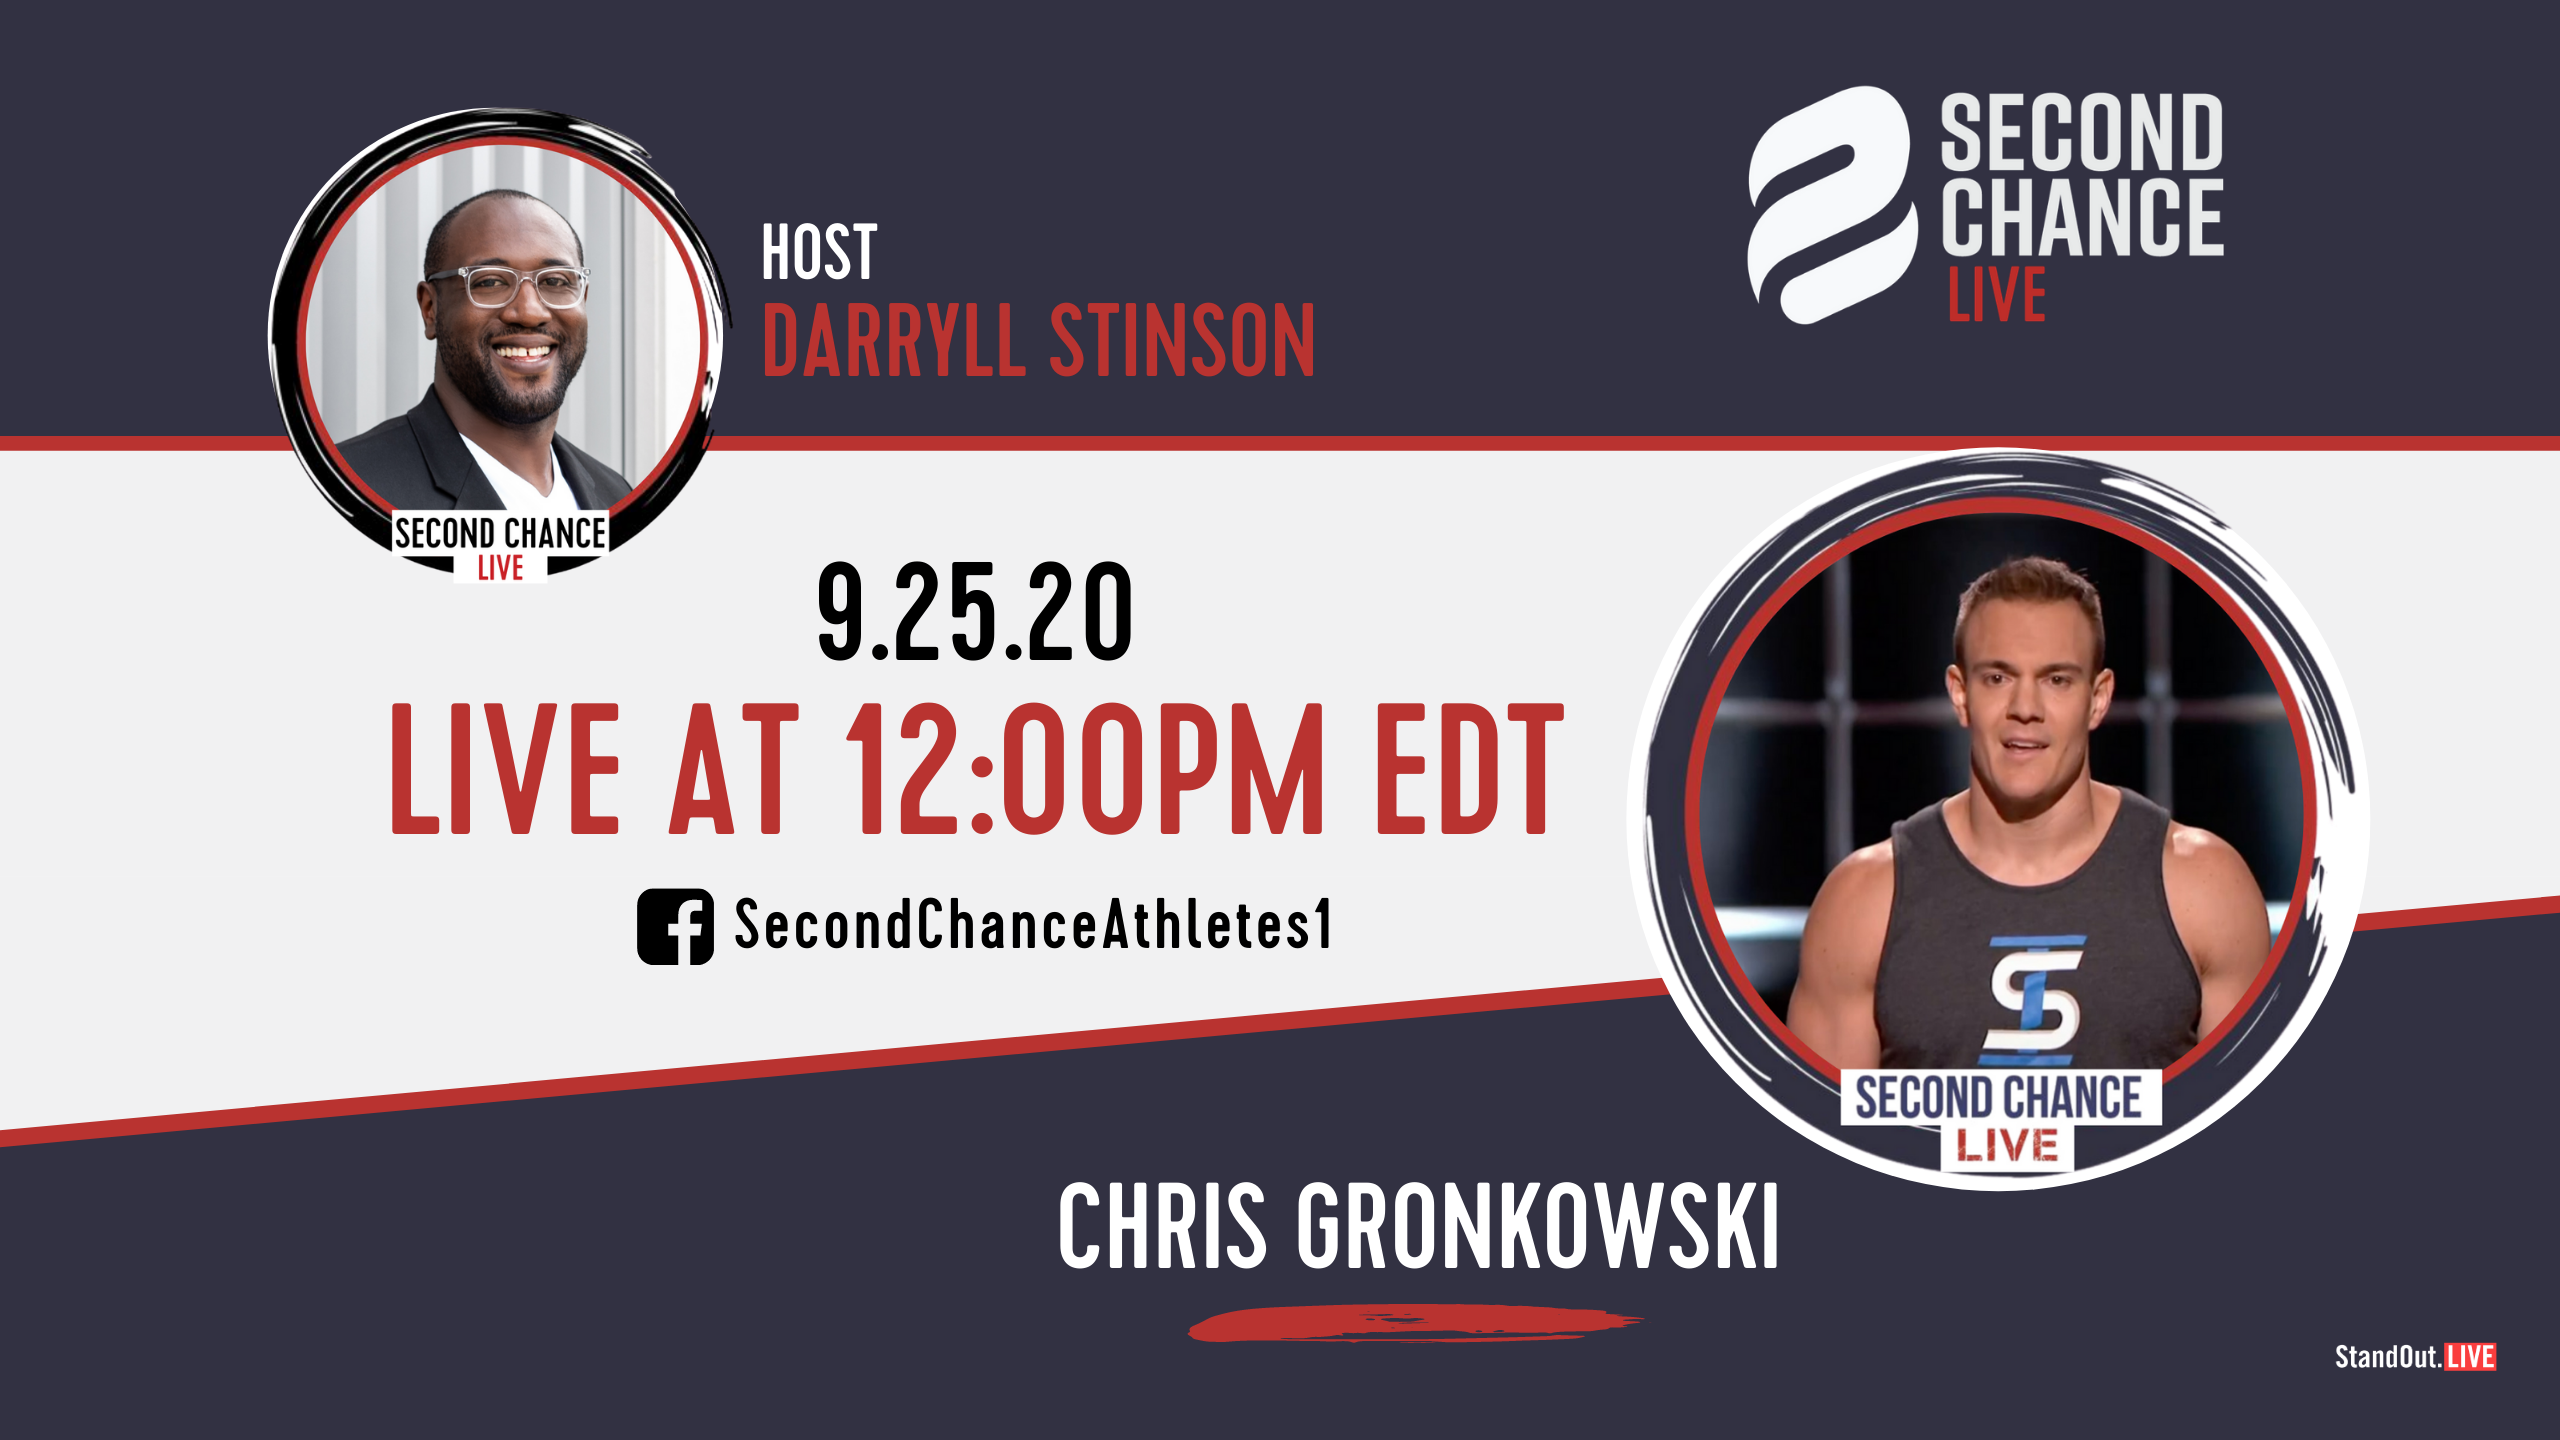 Second Chance LIVE -with Chris Gronkowski